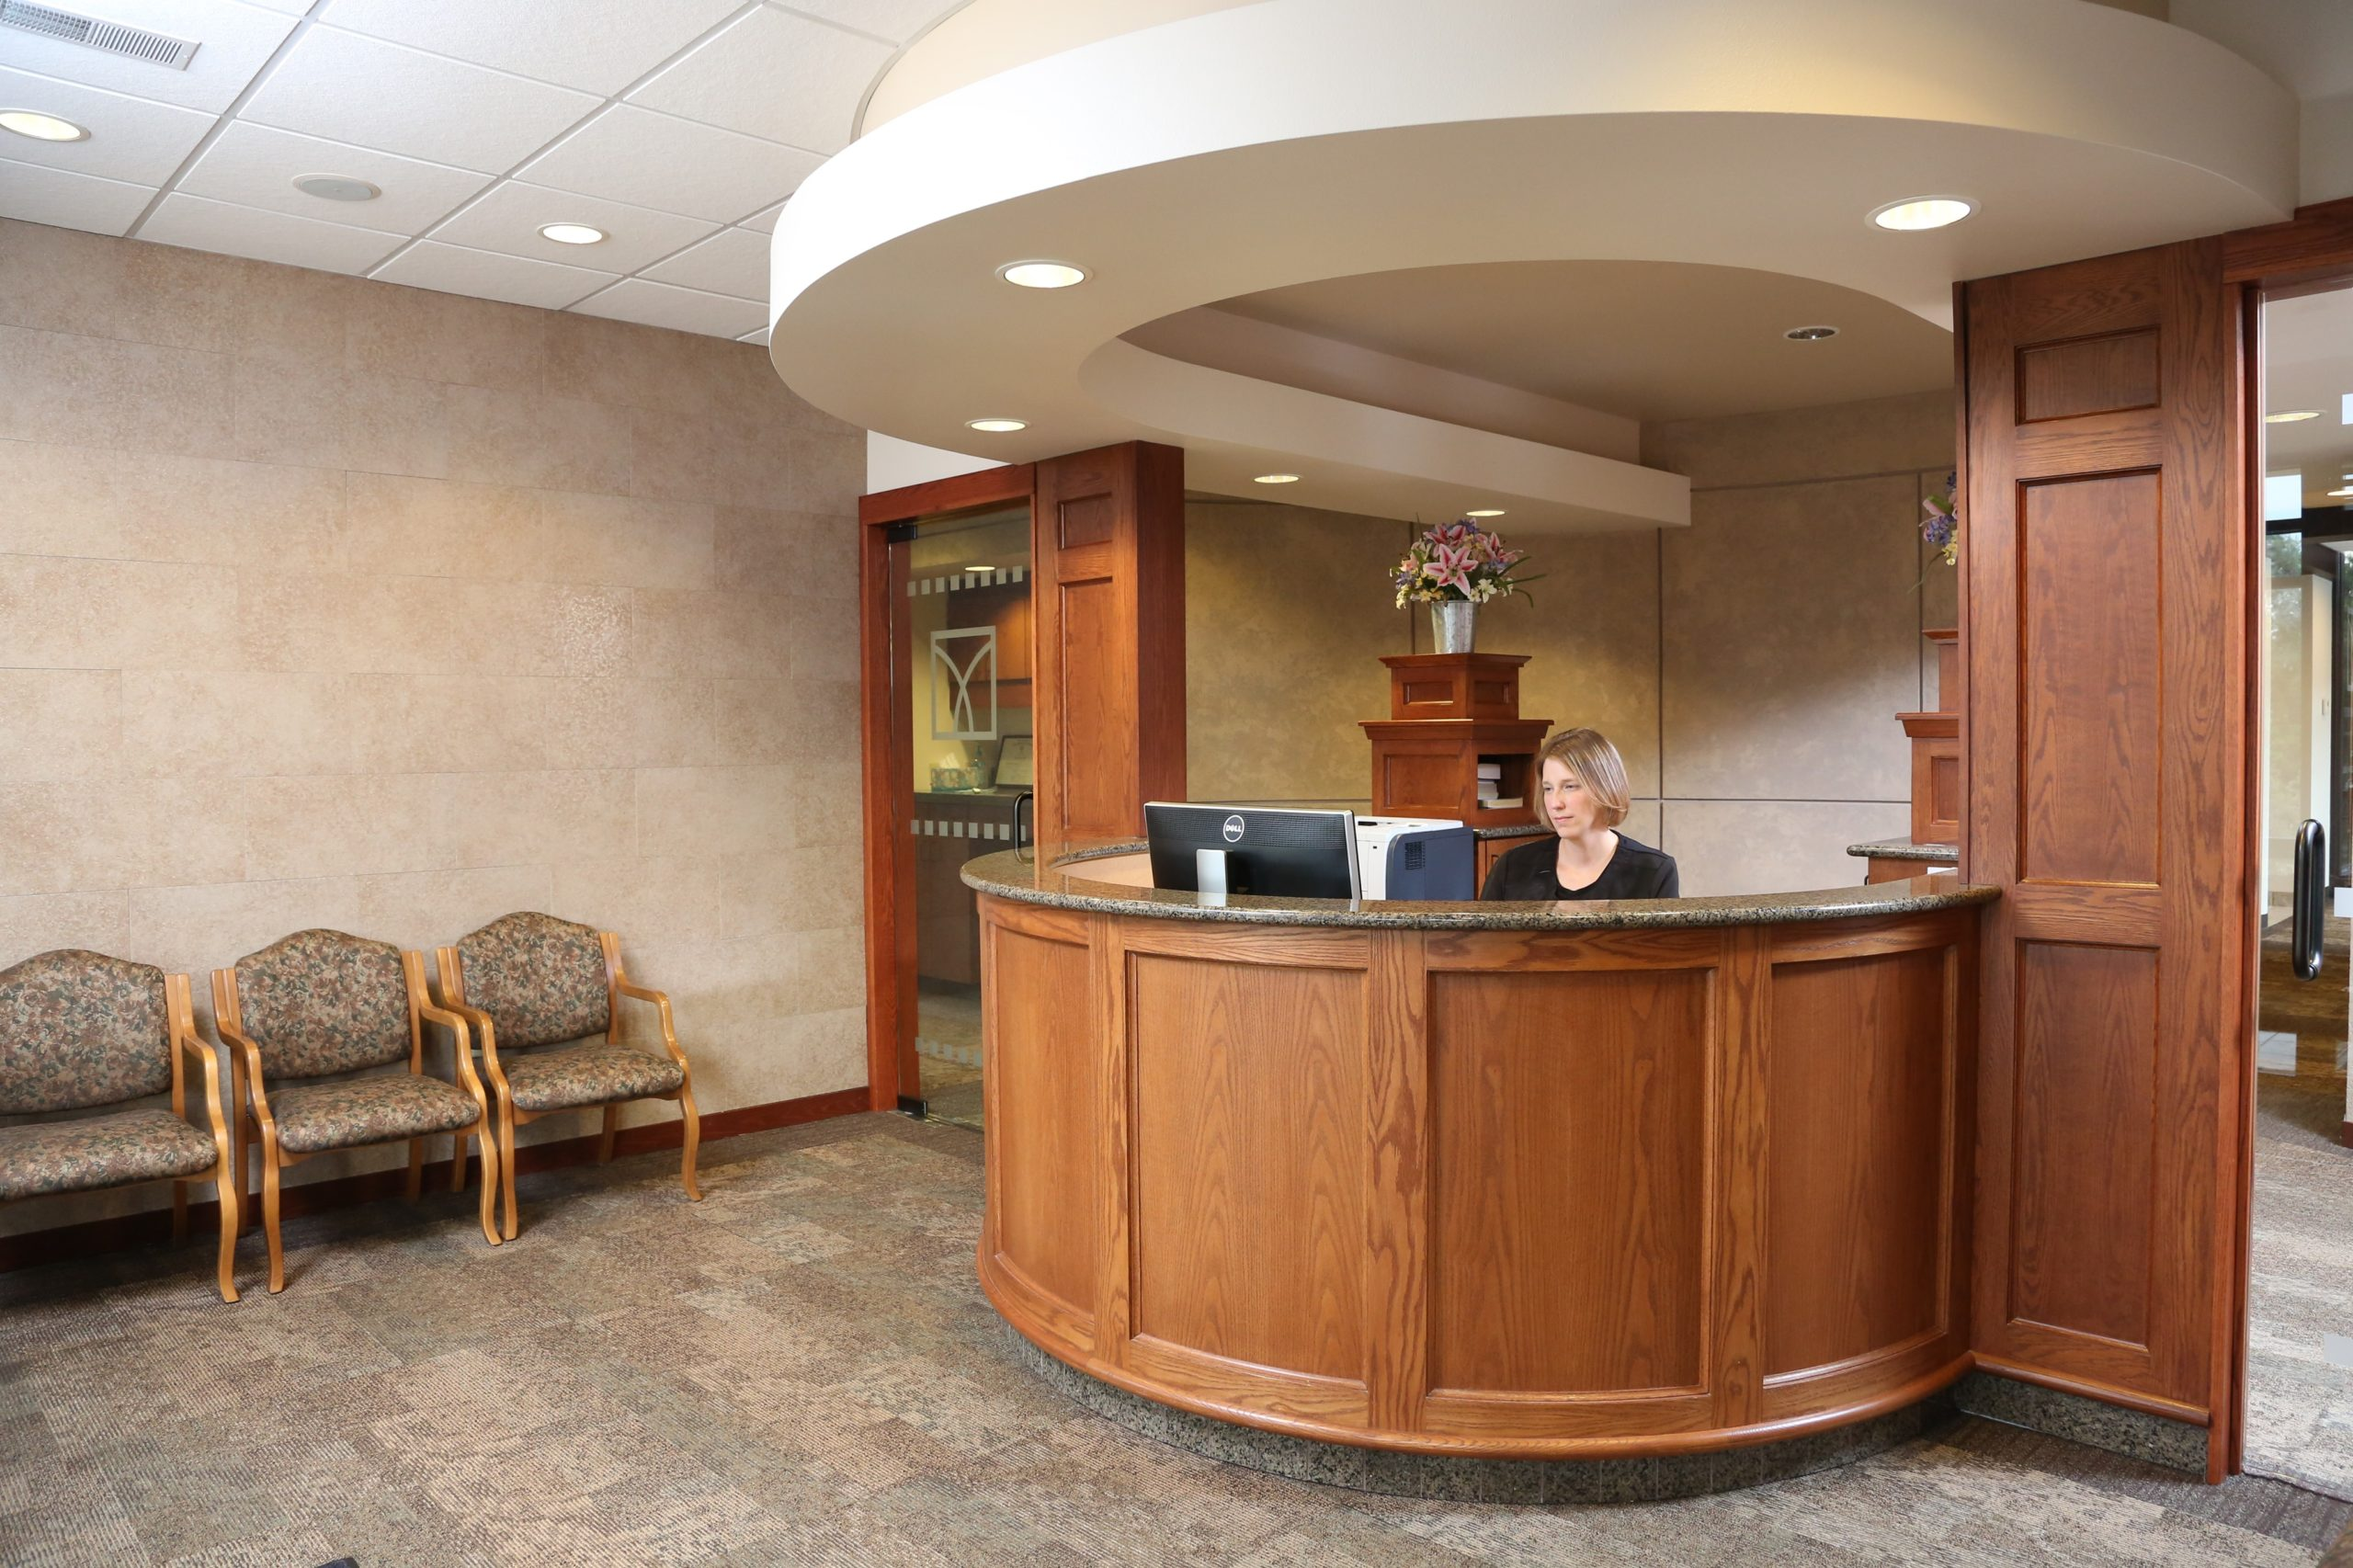 The front desk at Marshall T. Lavin DDS